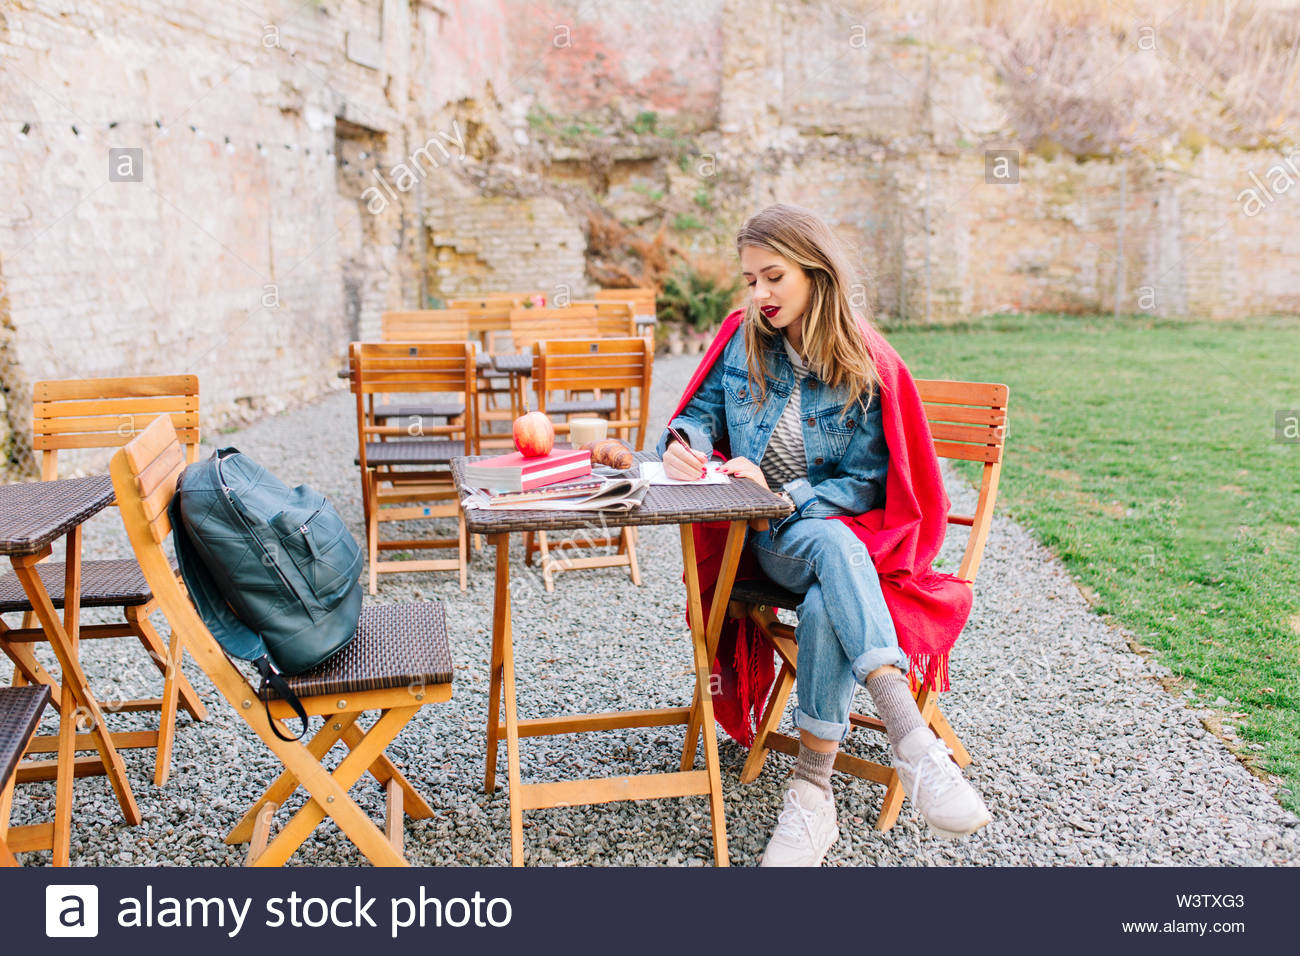 A beautiful girl with blonde hair, in denim suit sitting in the cozy cortyard writes personal notes...Young woman, thoughtfully, stylish outfit - Stock Image